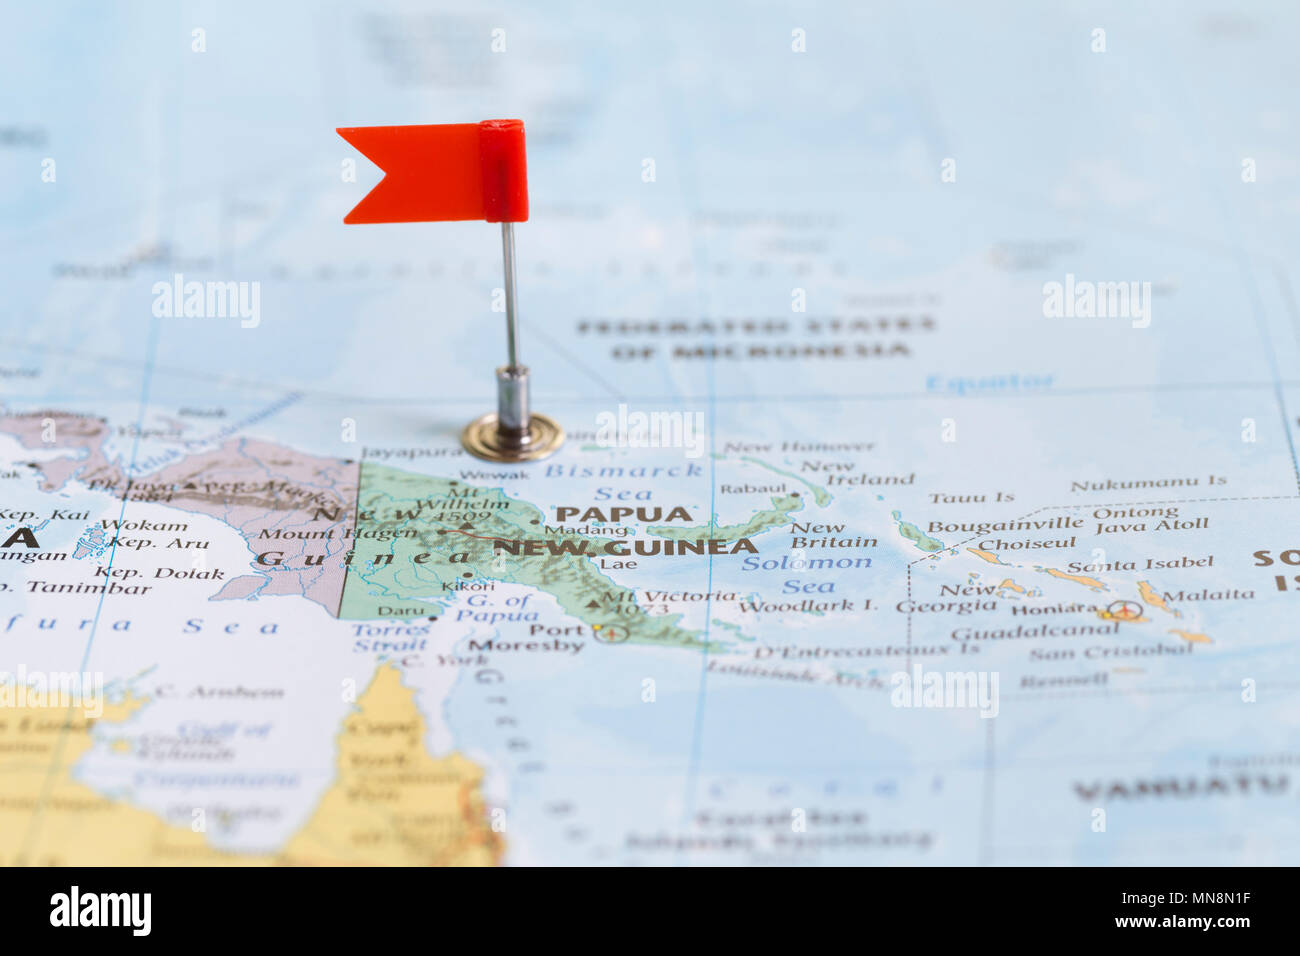 Small Red Flag Marking Papua New Guinea On A World Map Stock Photo